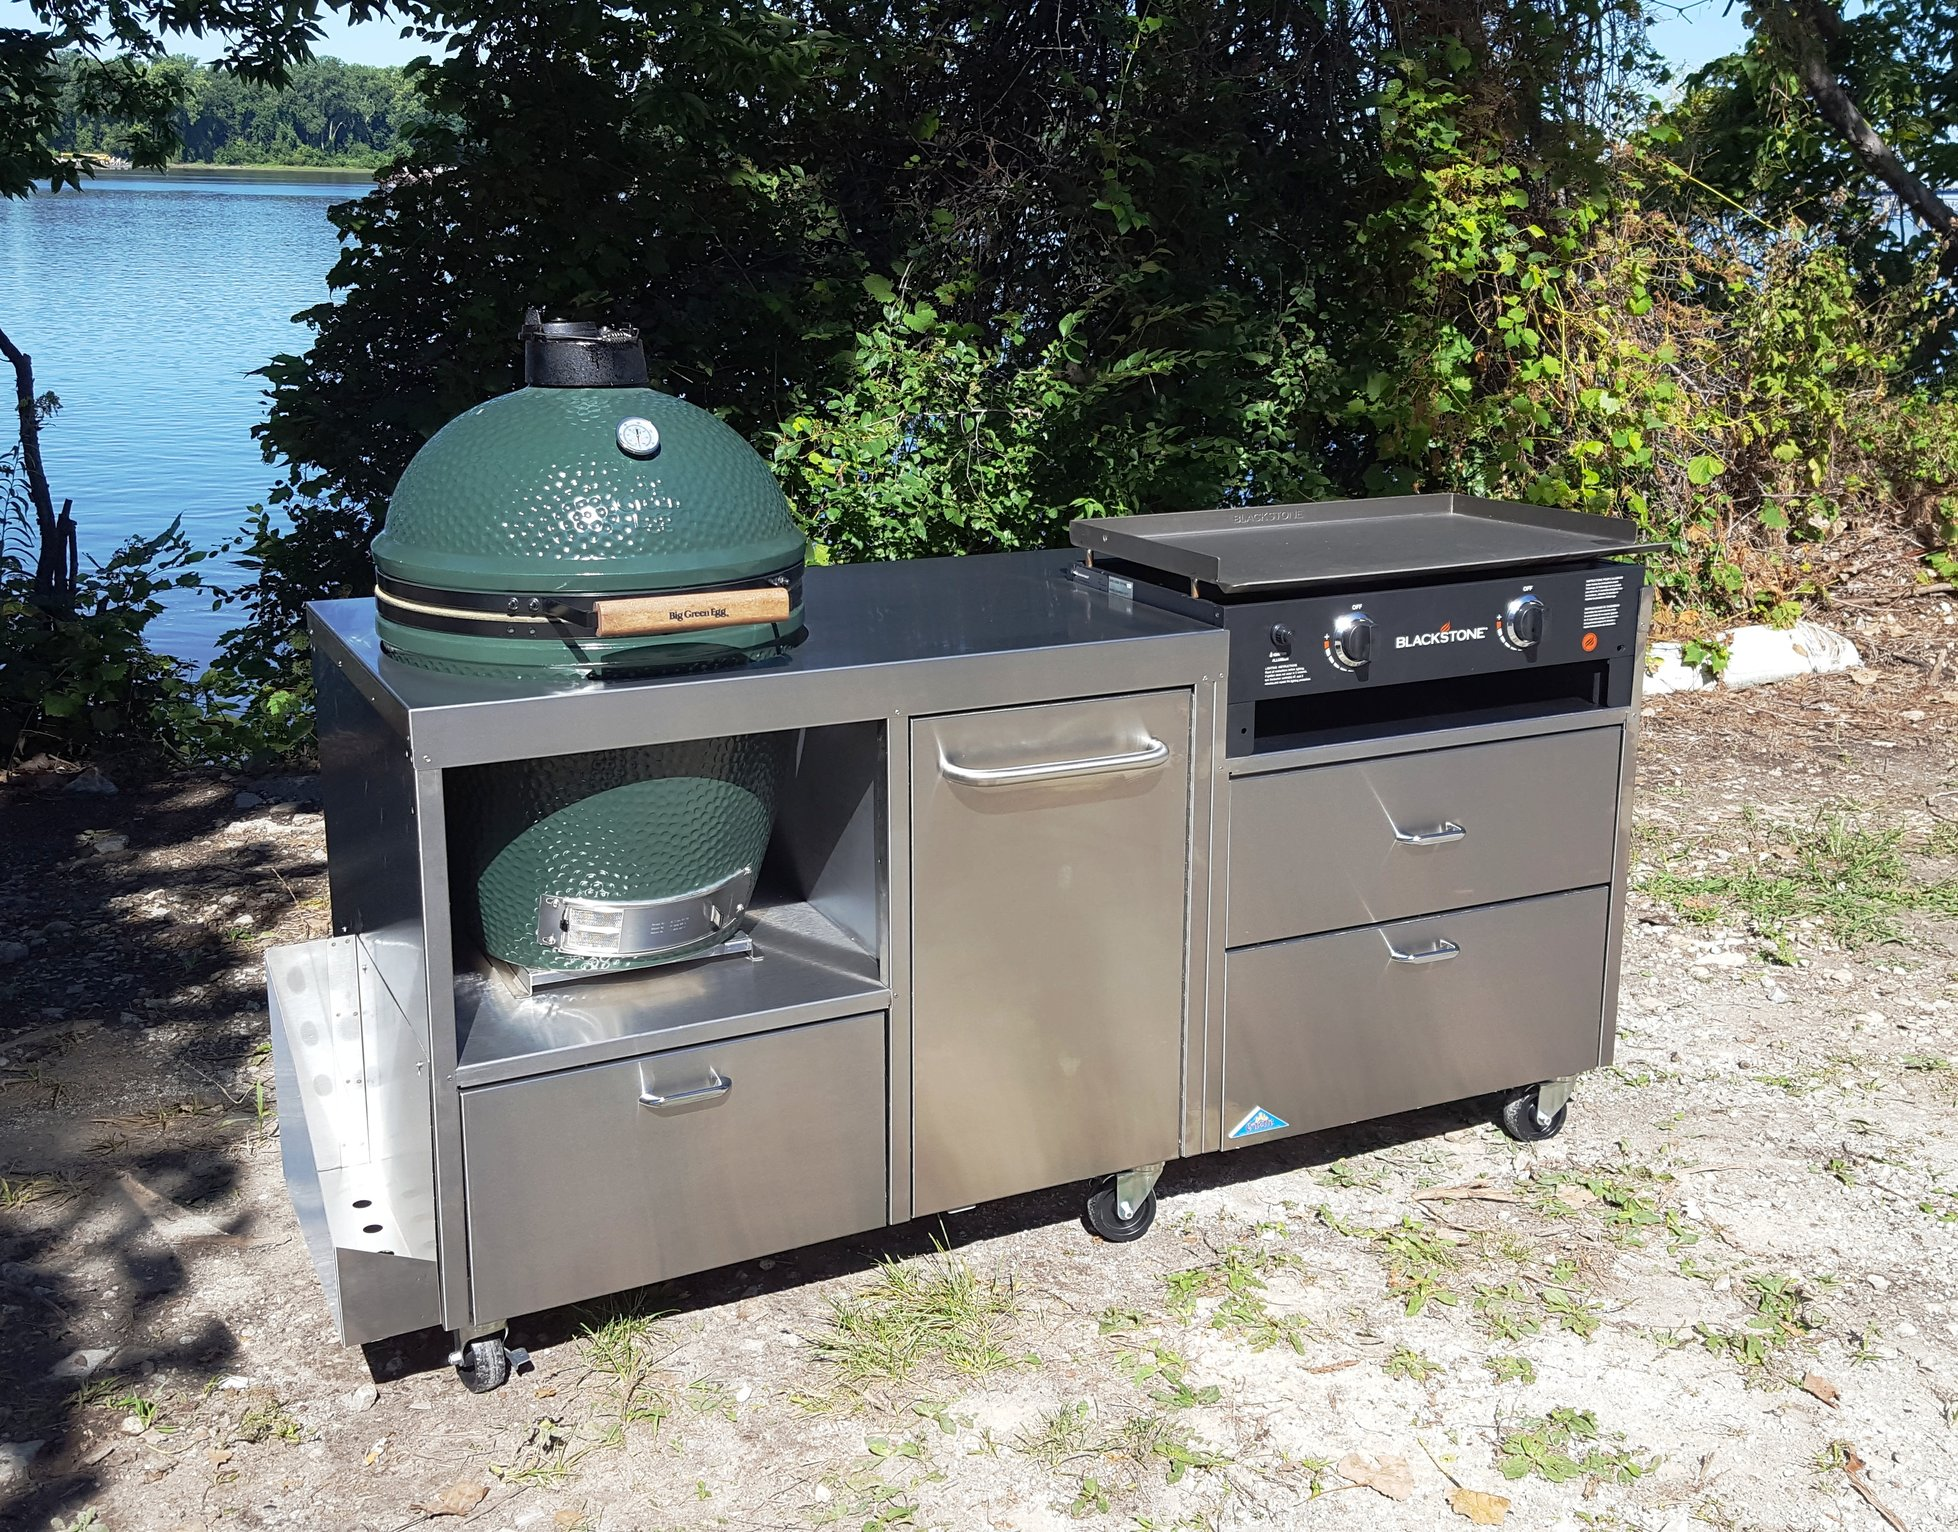 Table with blackstone griddle built in big green egg for Blackstone griddle